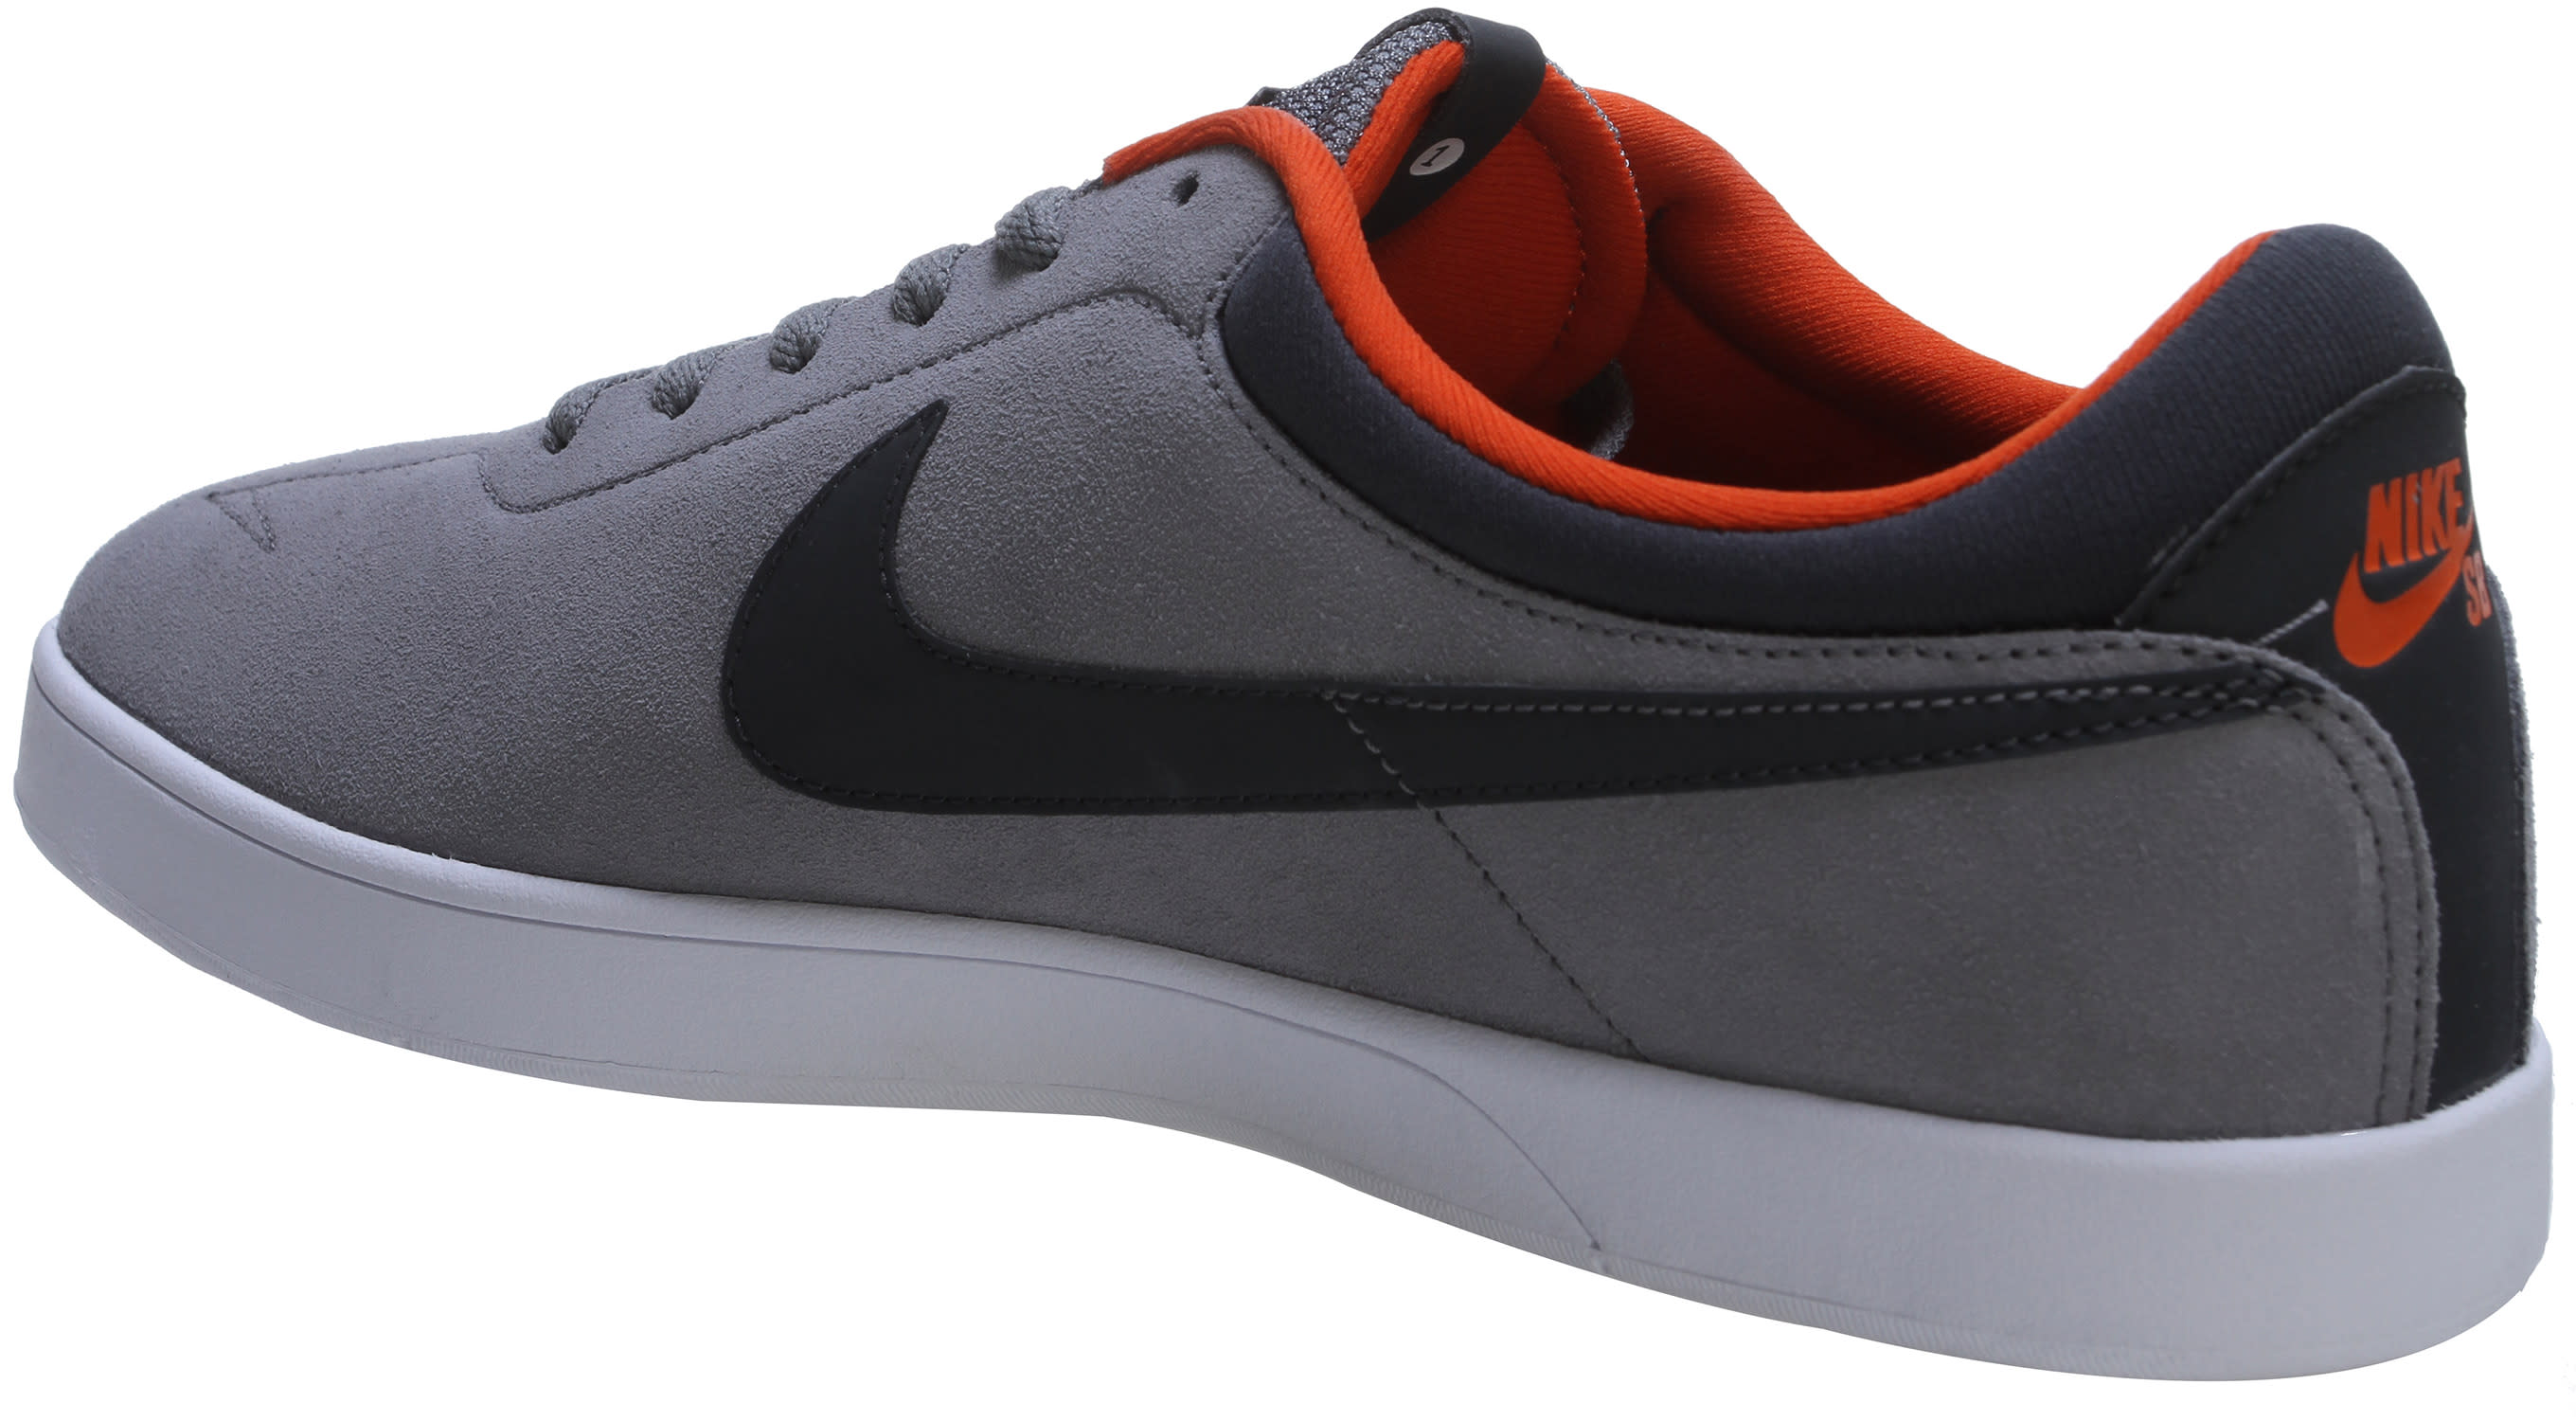 Nike Air Zoom Eric Koston Skate Shoes - thumbnail 3 46d5485952ed